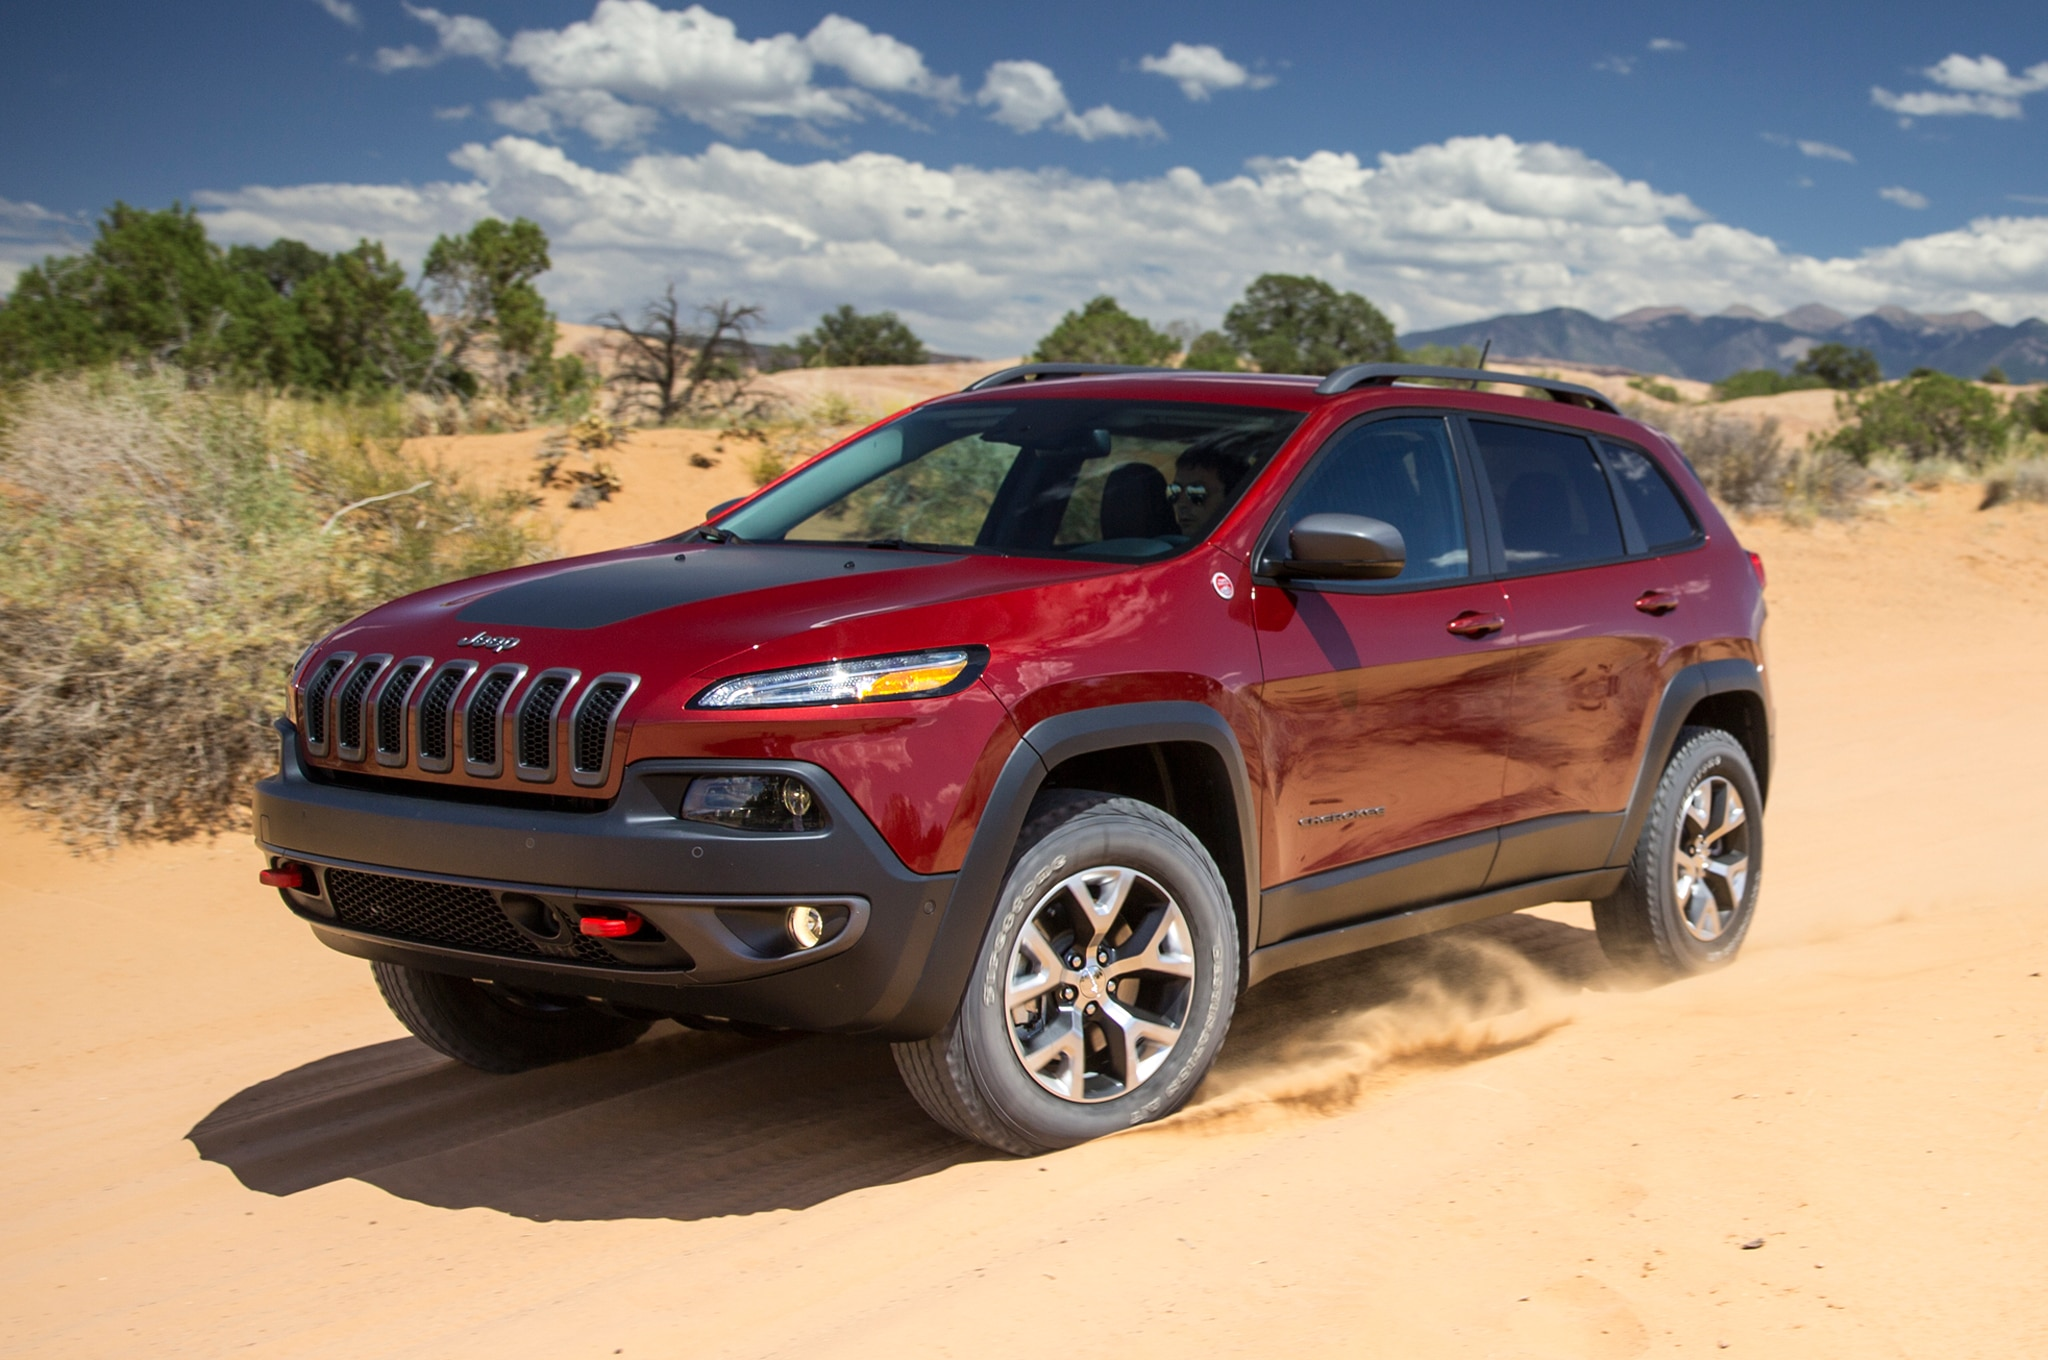 jeep to replace patriot compass in 16 new grand wagoneer in 18. Black Bedroom Furniture Sets. Home Design Ideas